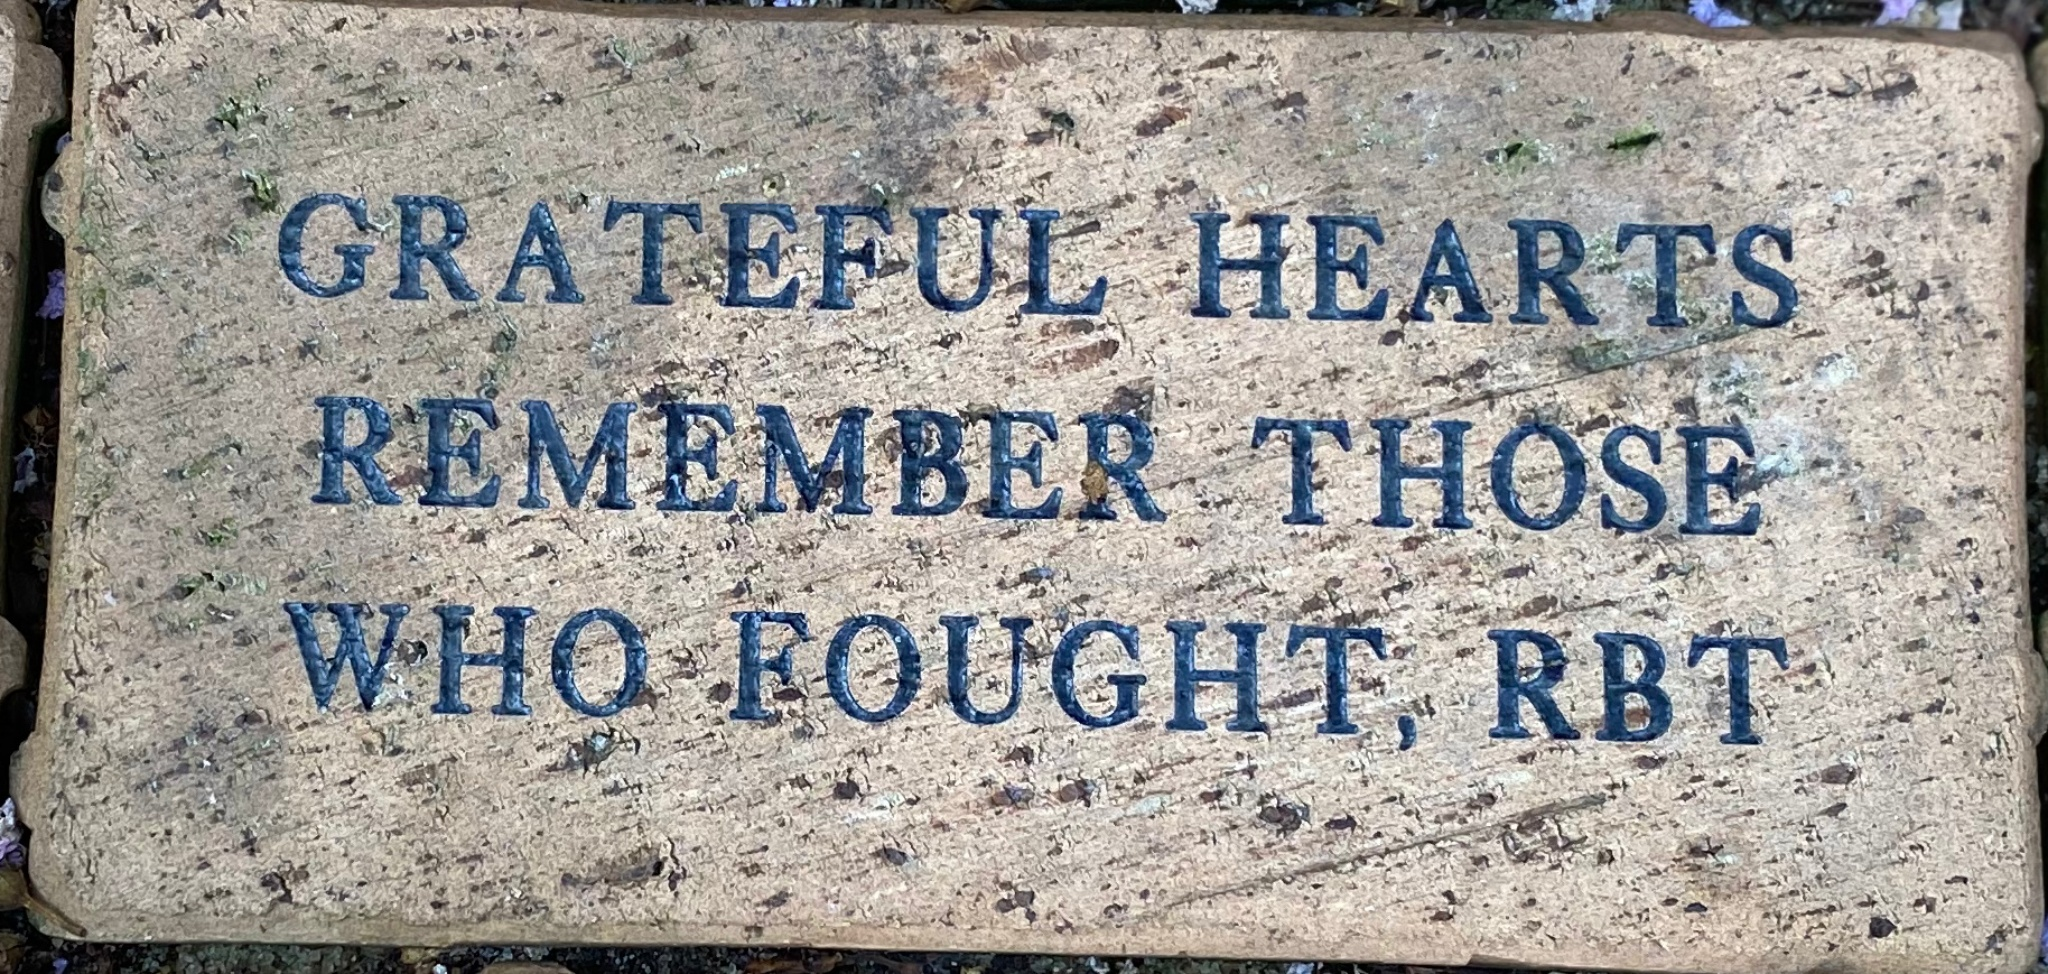 GRATEFUL HEARTS REMEMBER THOSE WHO FOUGHT, RBT